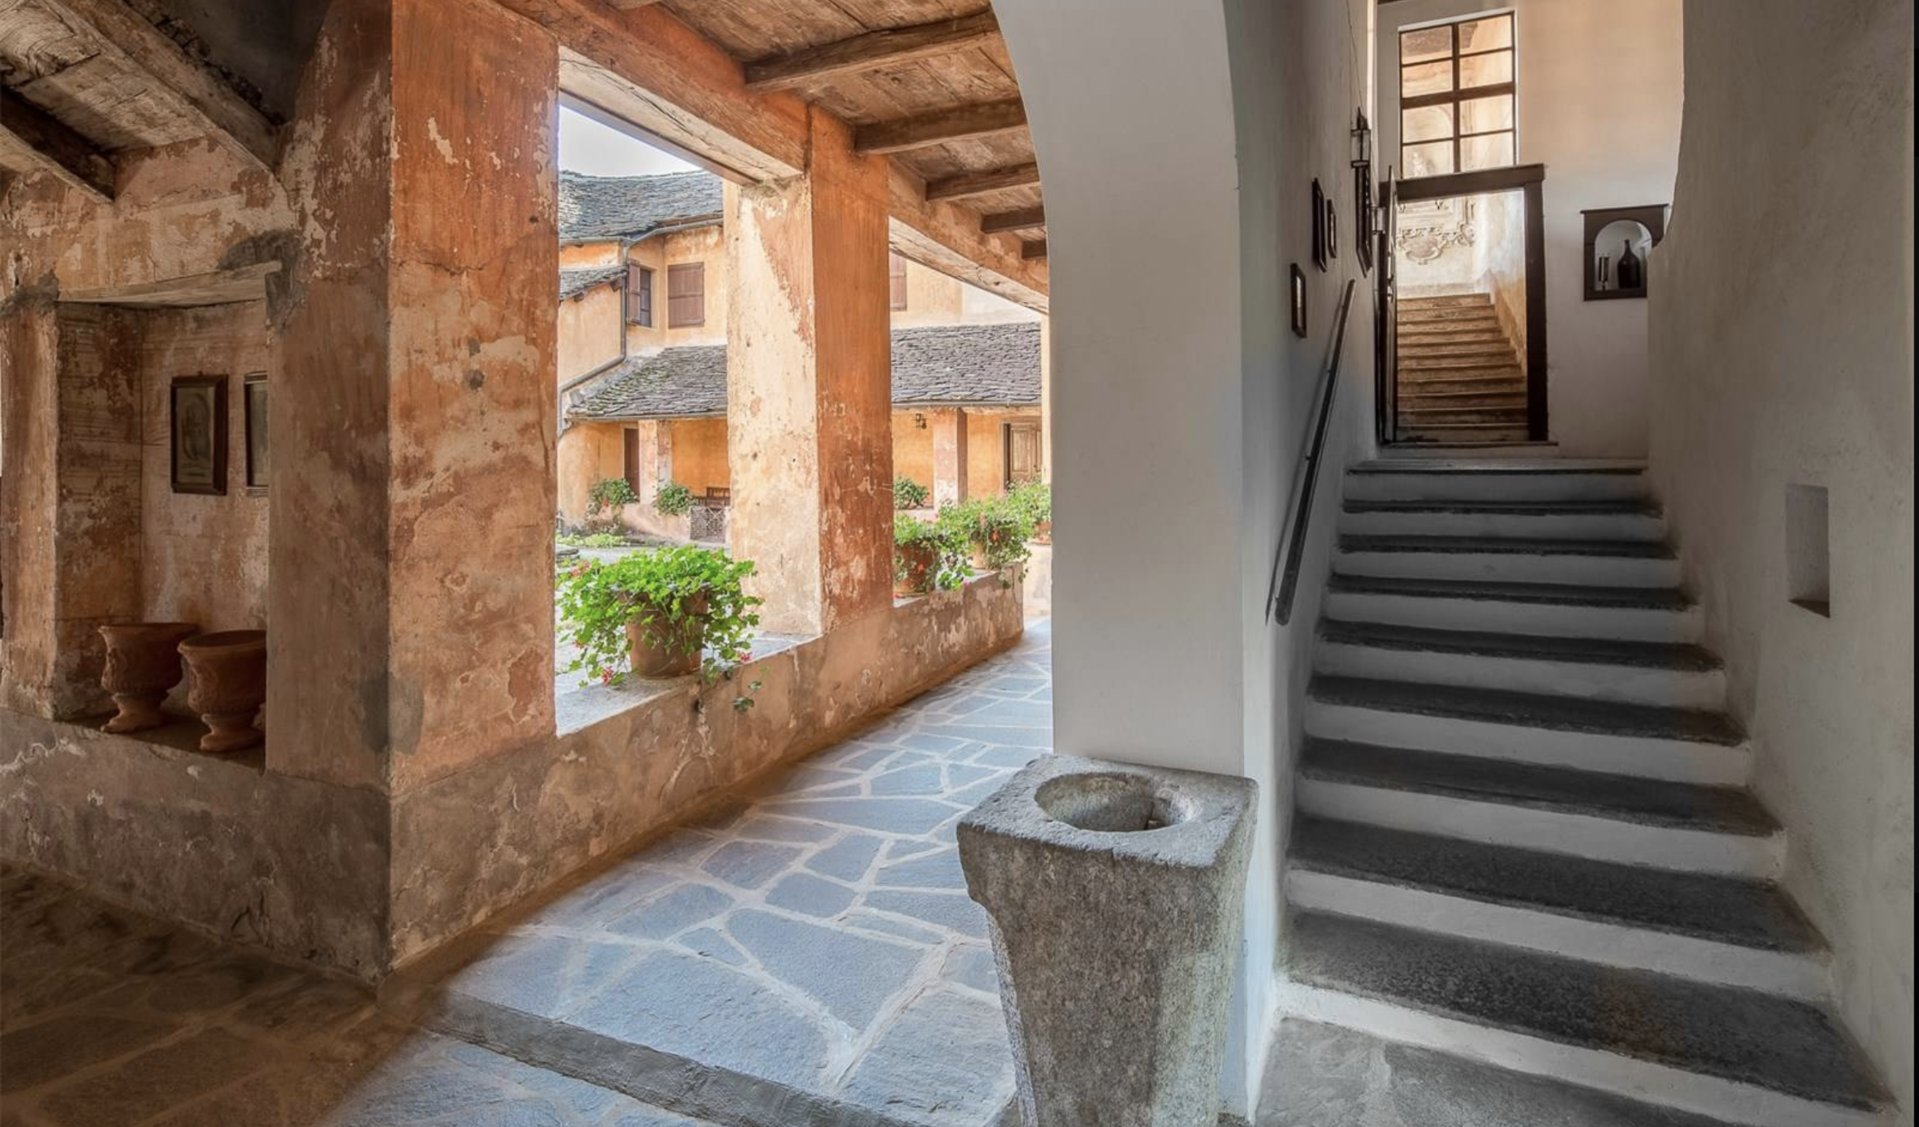 Historic property former convent for sale in Orta - stairs